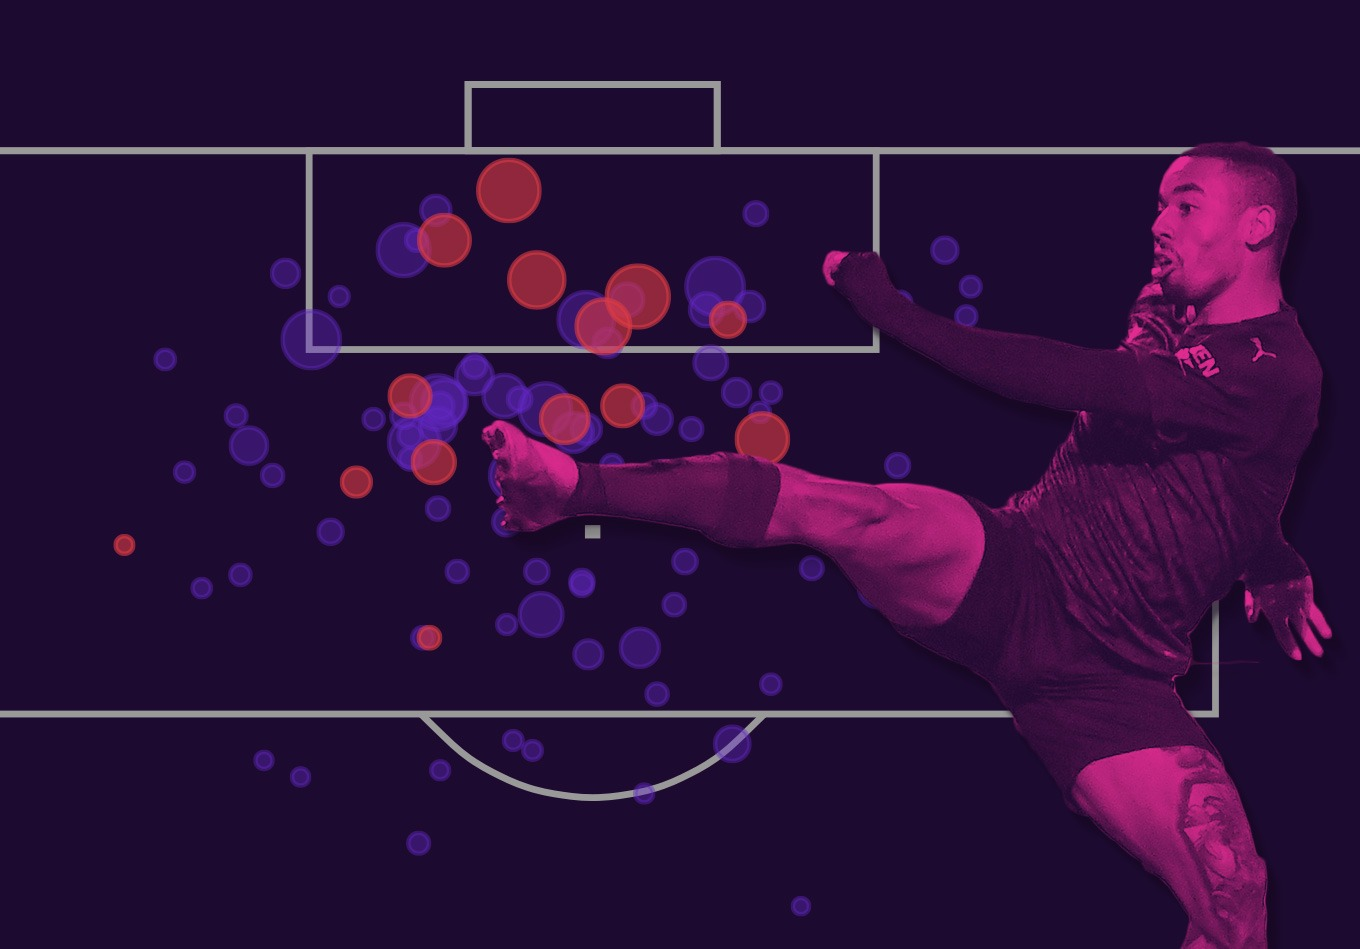 What Are Expected Goals (xG)?